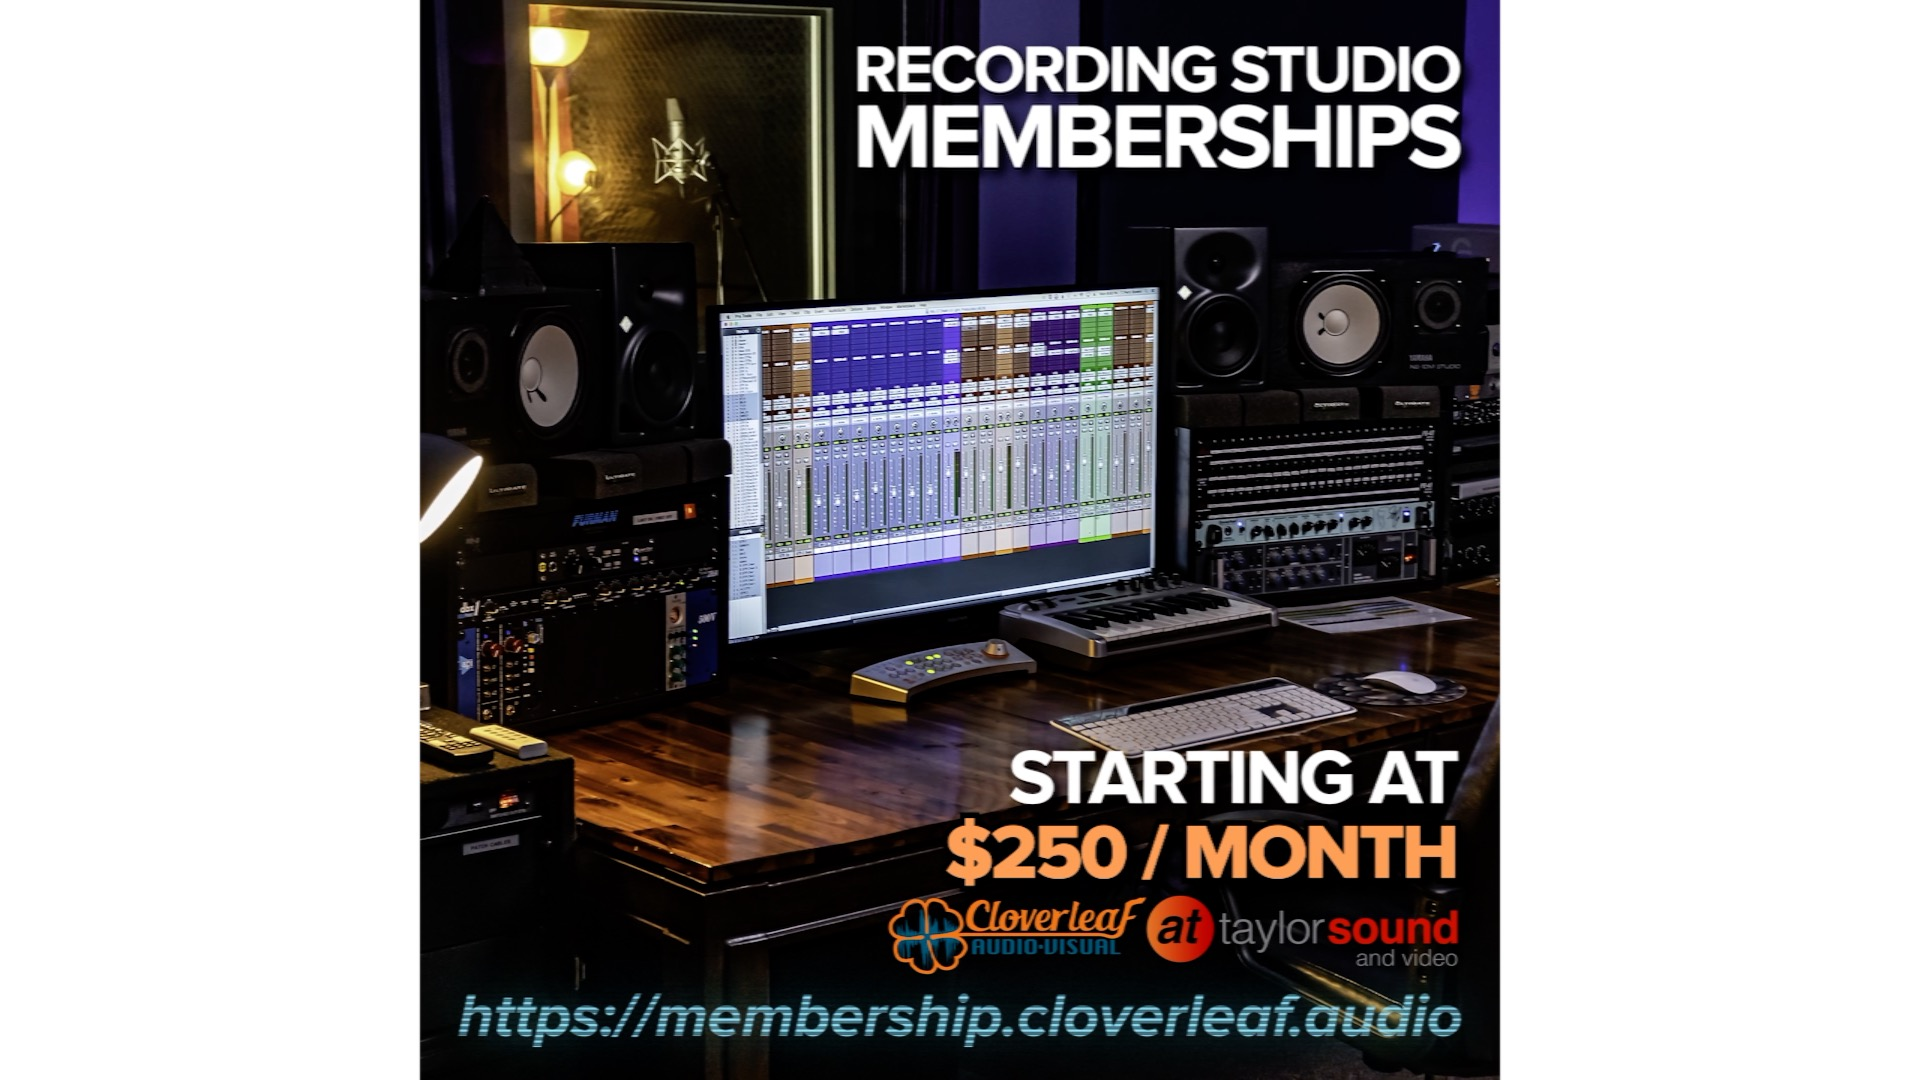 Recording Studio Memberships at Taylor Sound – Managed by Cloverleaf Audio Visual